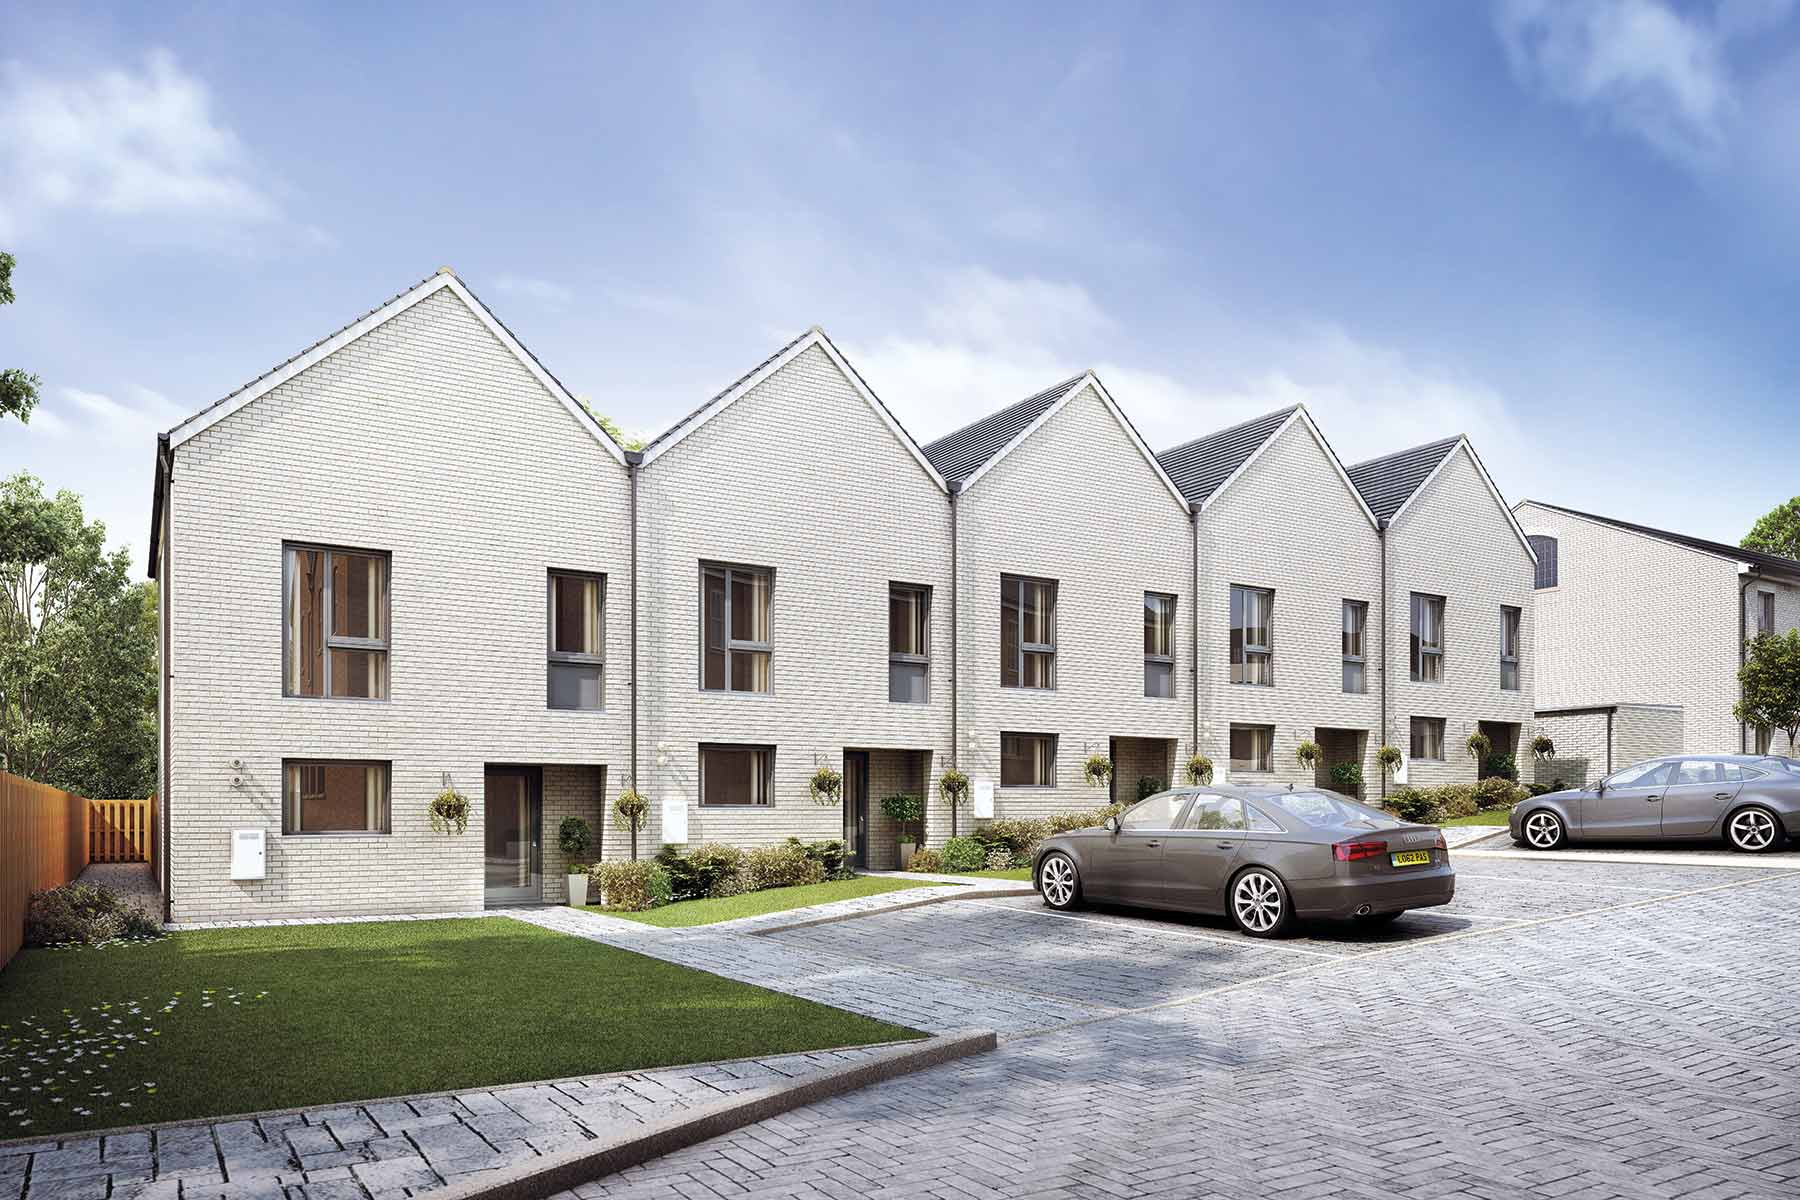 House-Types---Block2-Plots-71-72-10k_web